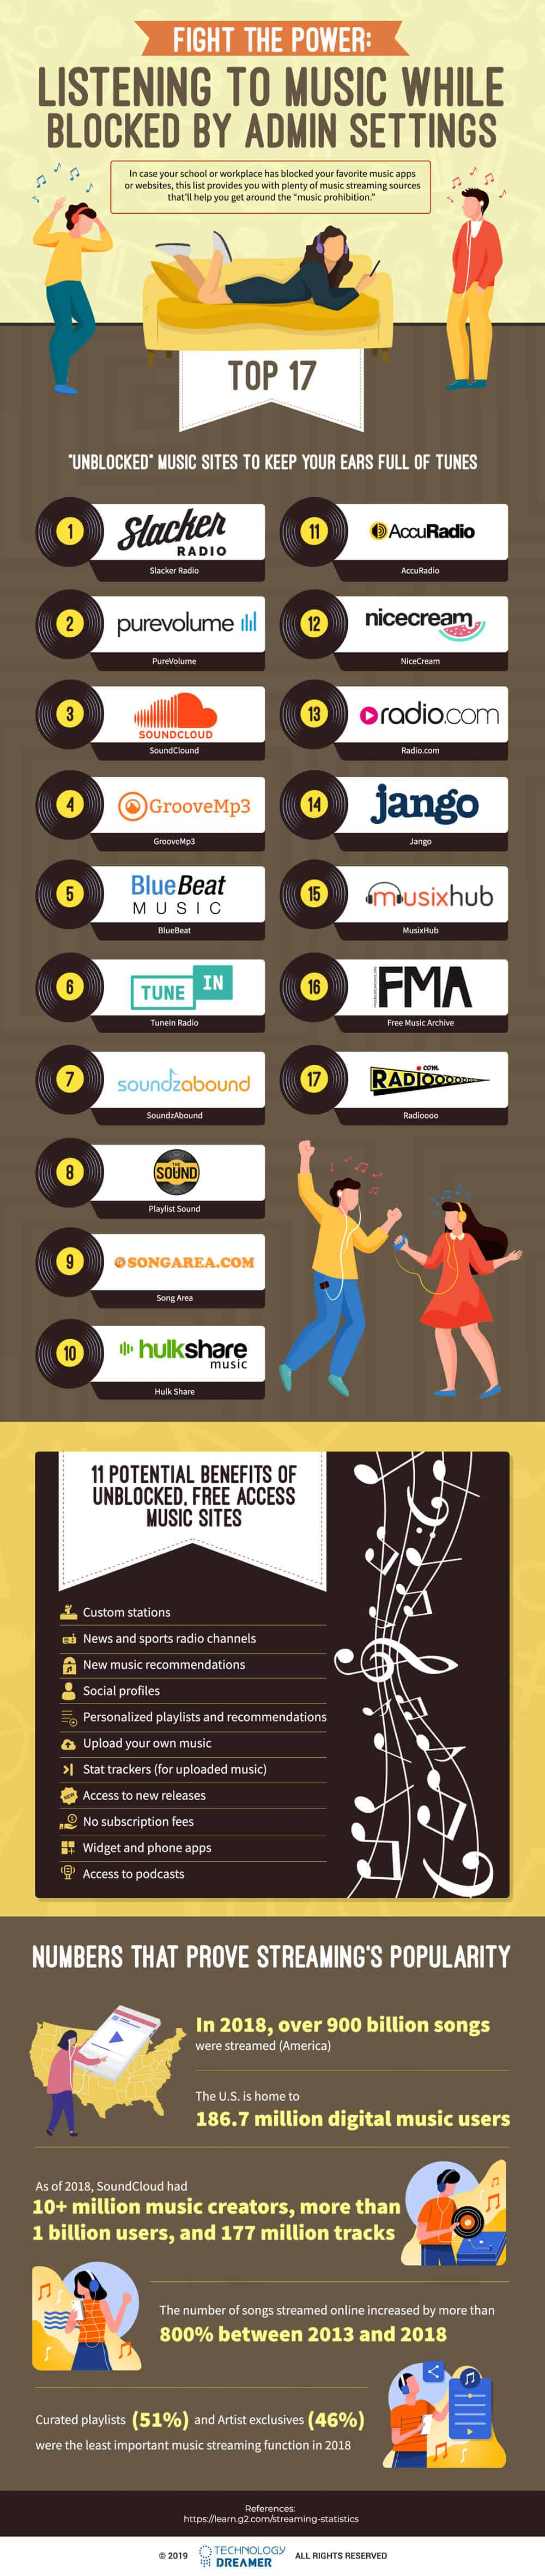 unblocked music sites infographic